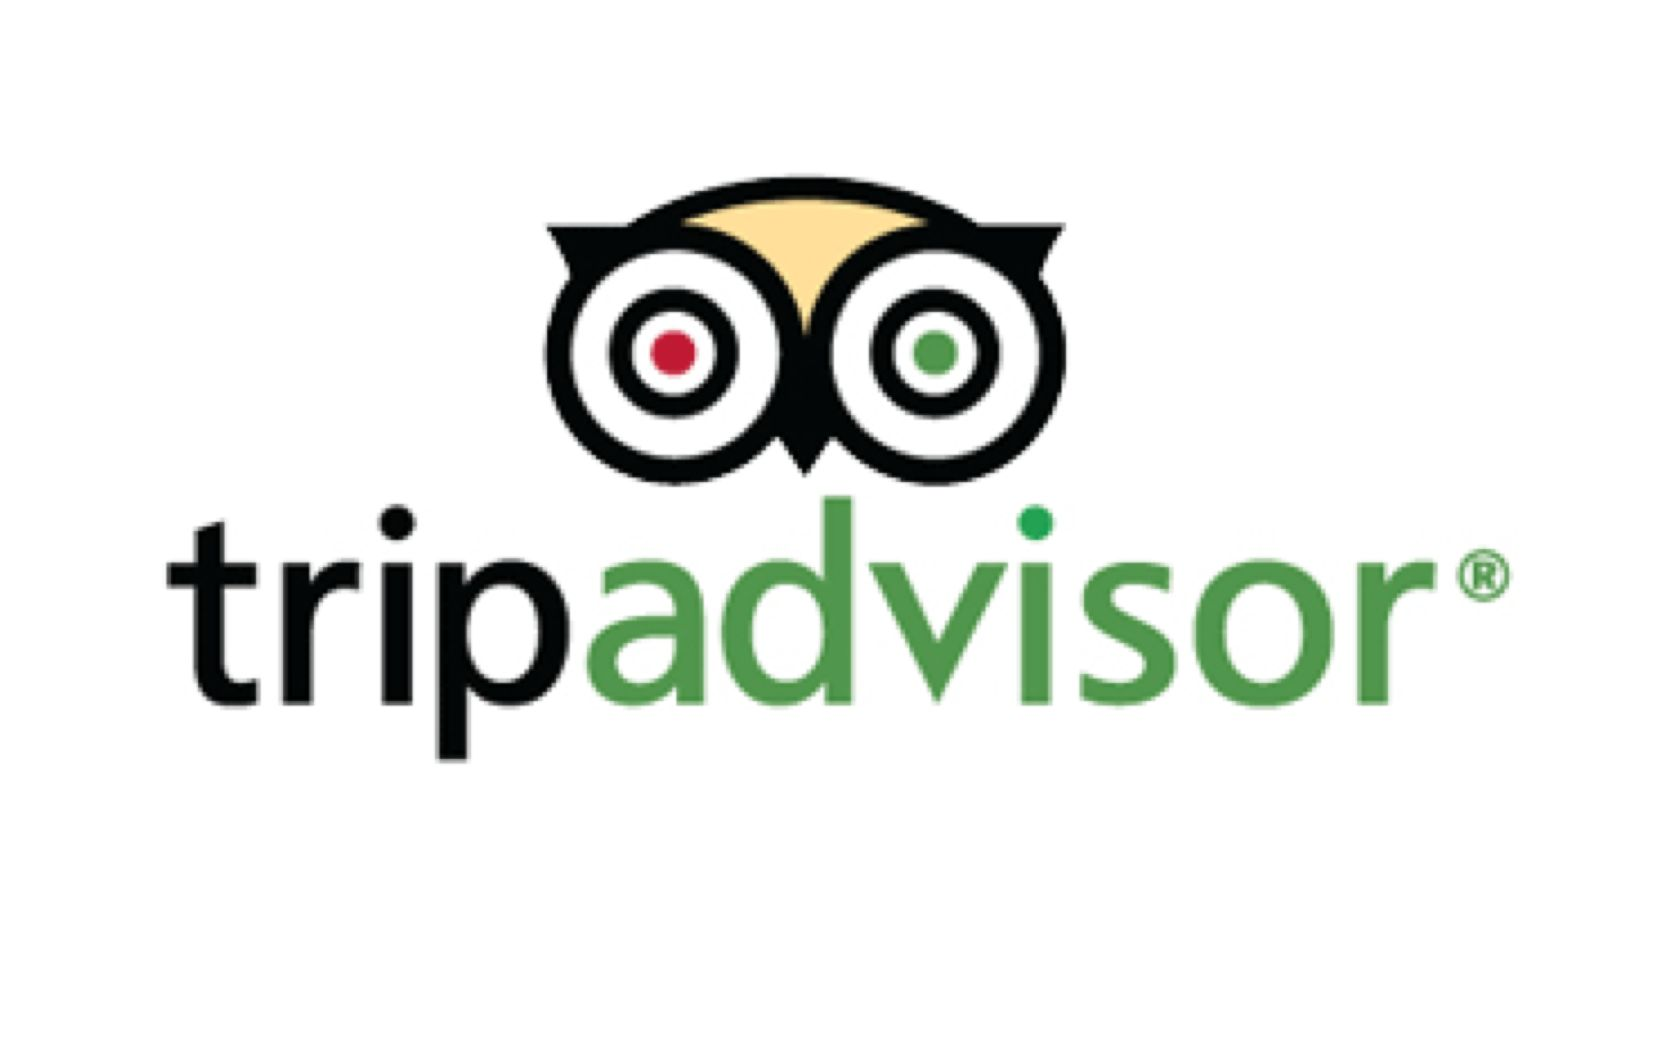 tripadvisor-logo-vector-download - Tripadvisor Logo Vector PNG